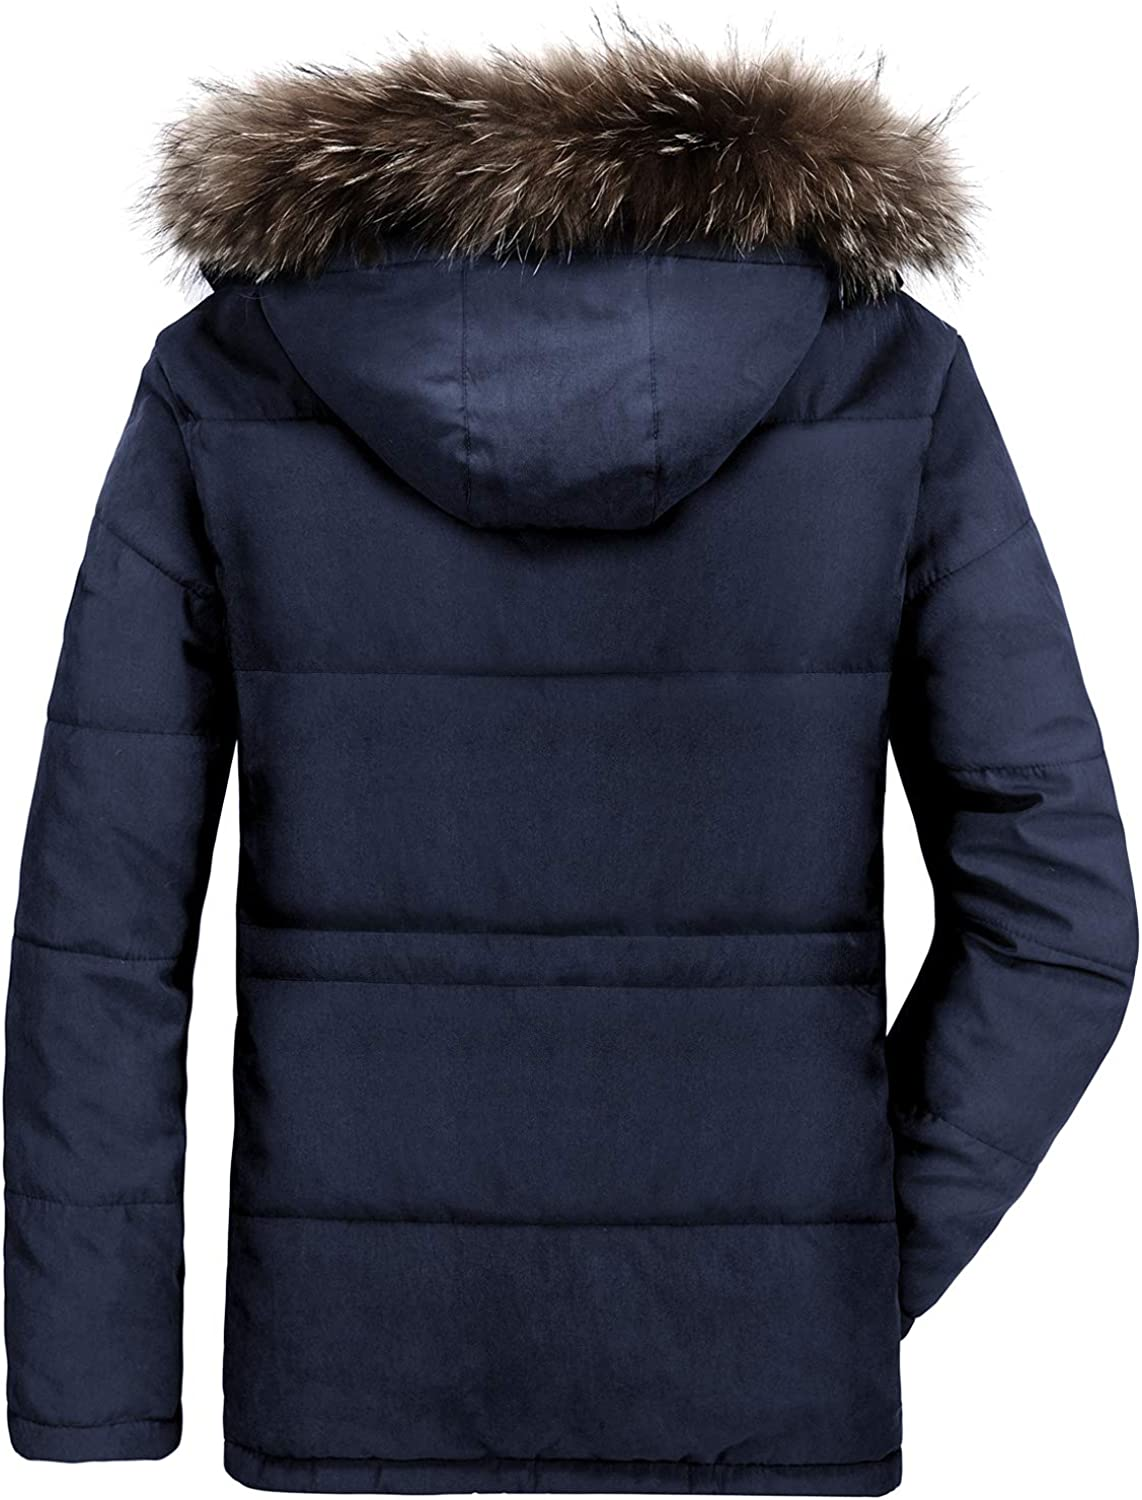 ELETOP Mens Coat Thicken Winter Warmth Jacket with Fur Hood Casual Outwear Coat